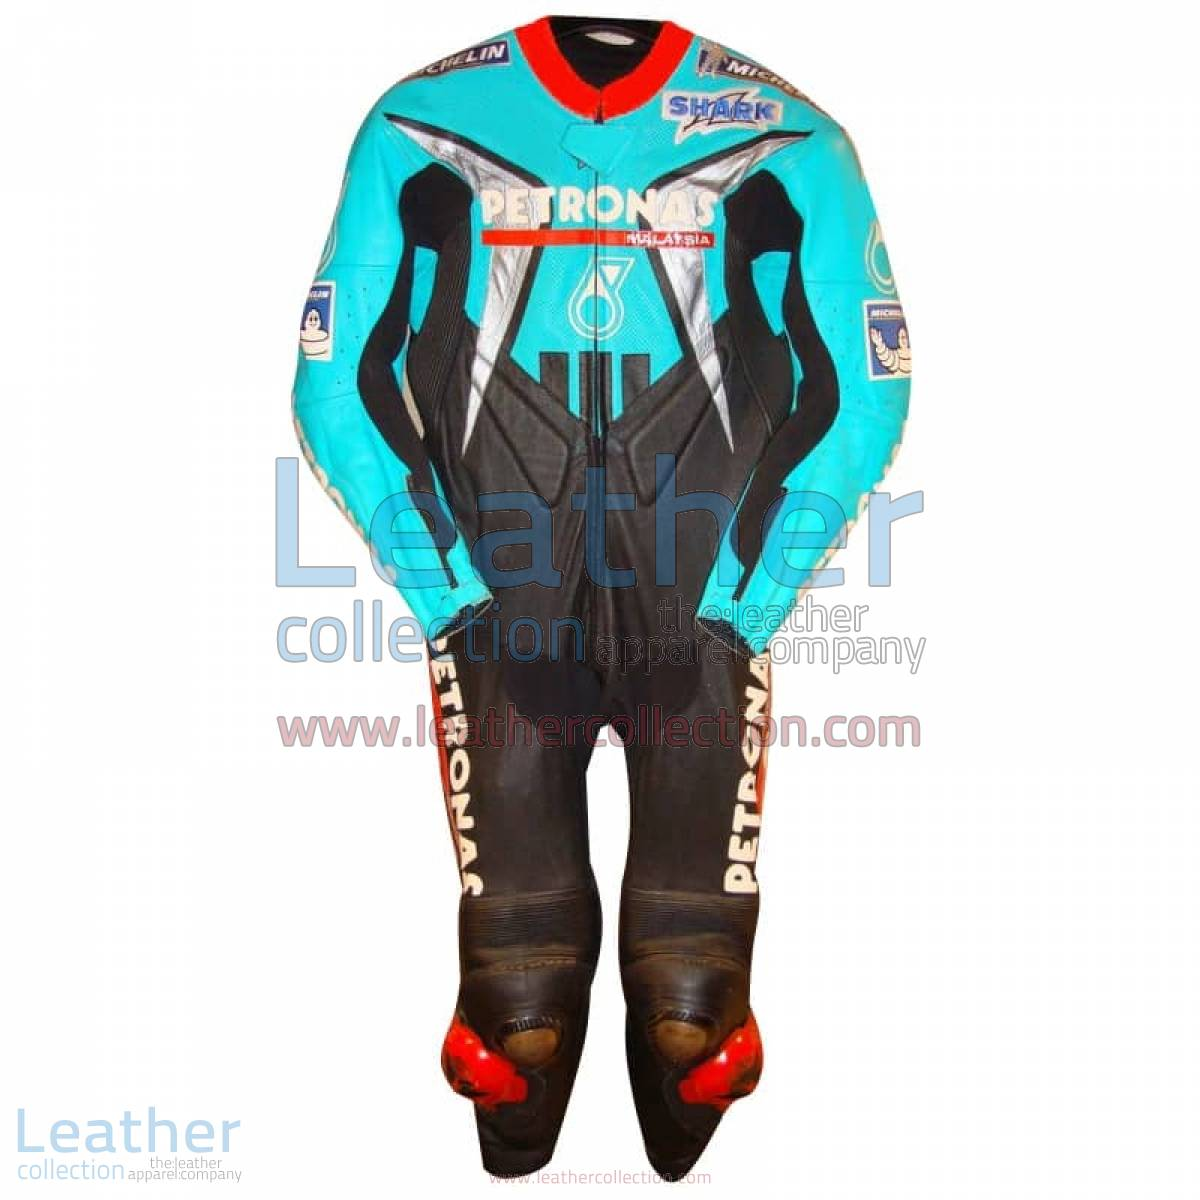 Carl Fogarty Petronas Replica Racing Leathers 2002 WSBK | racing leathers